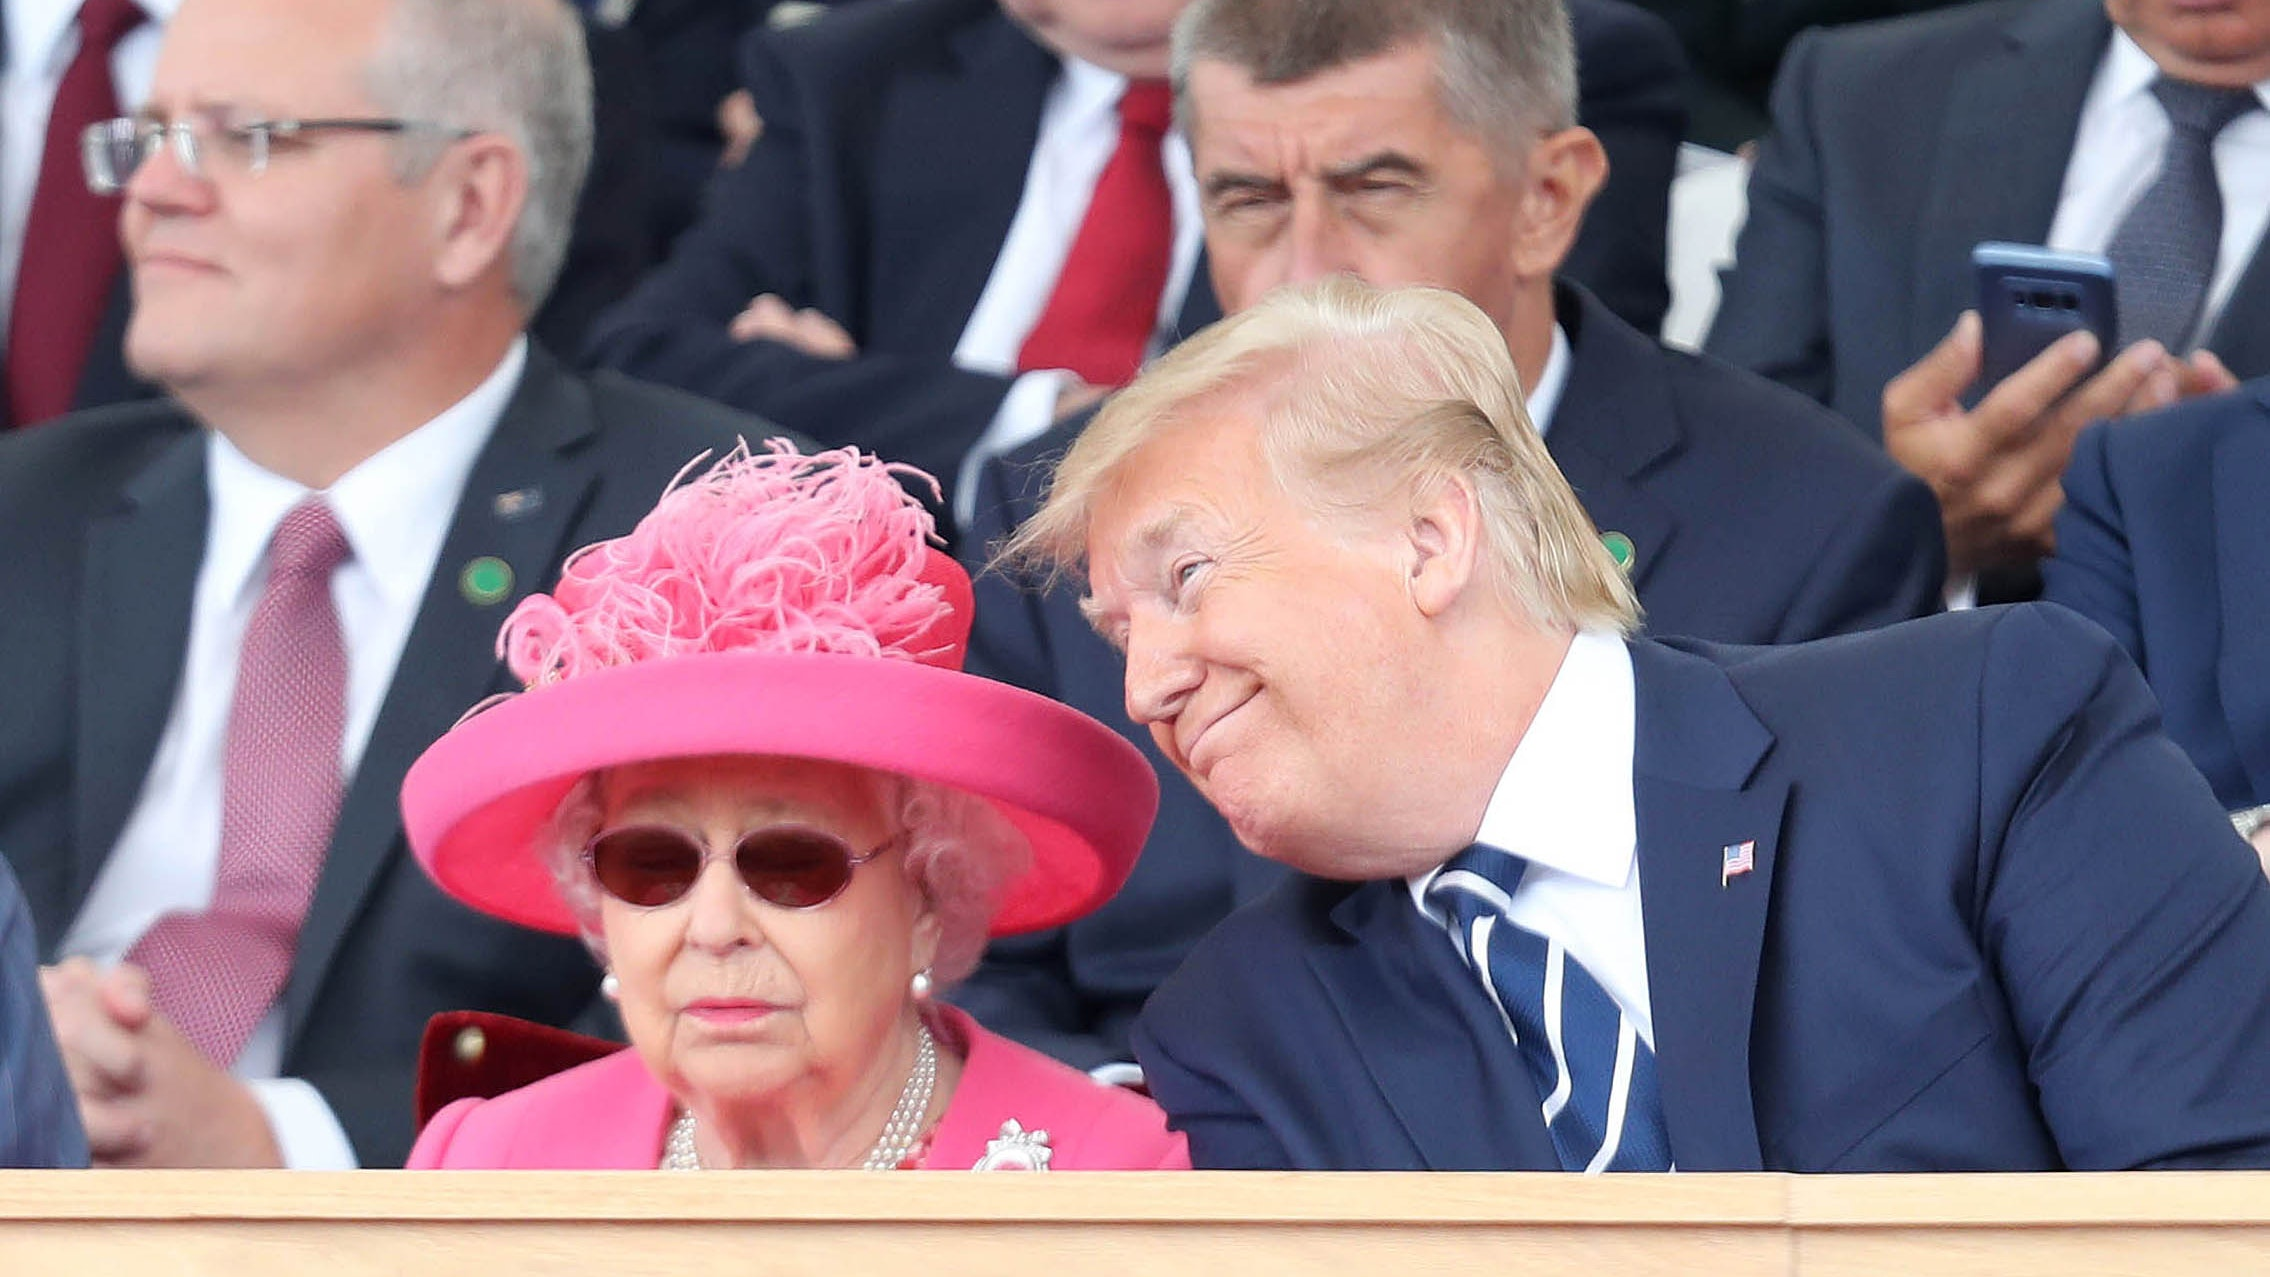 News images of Donald Trump's state visit to the UK